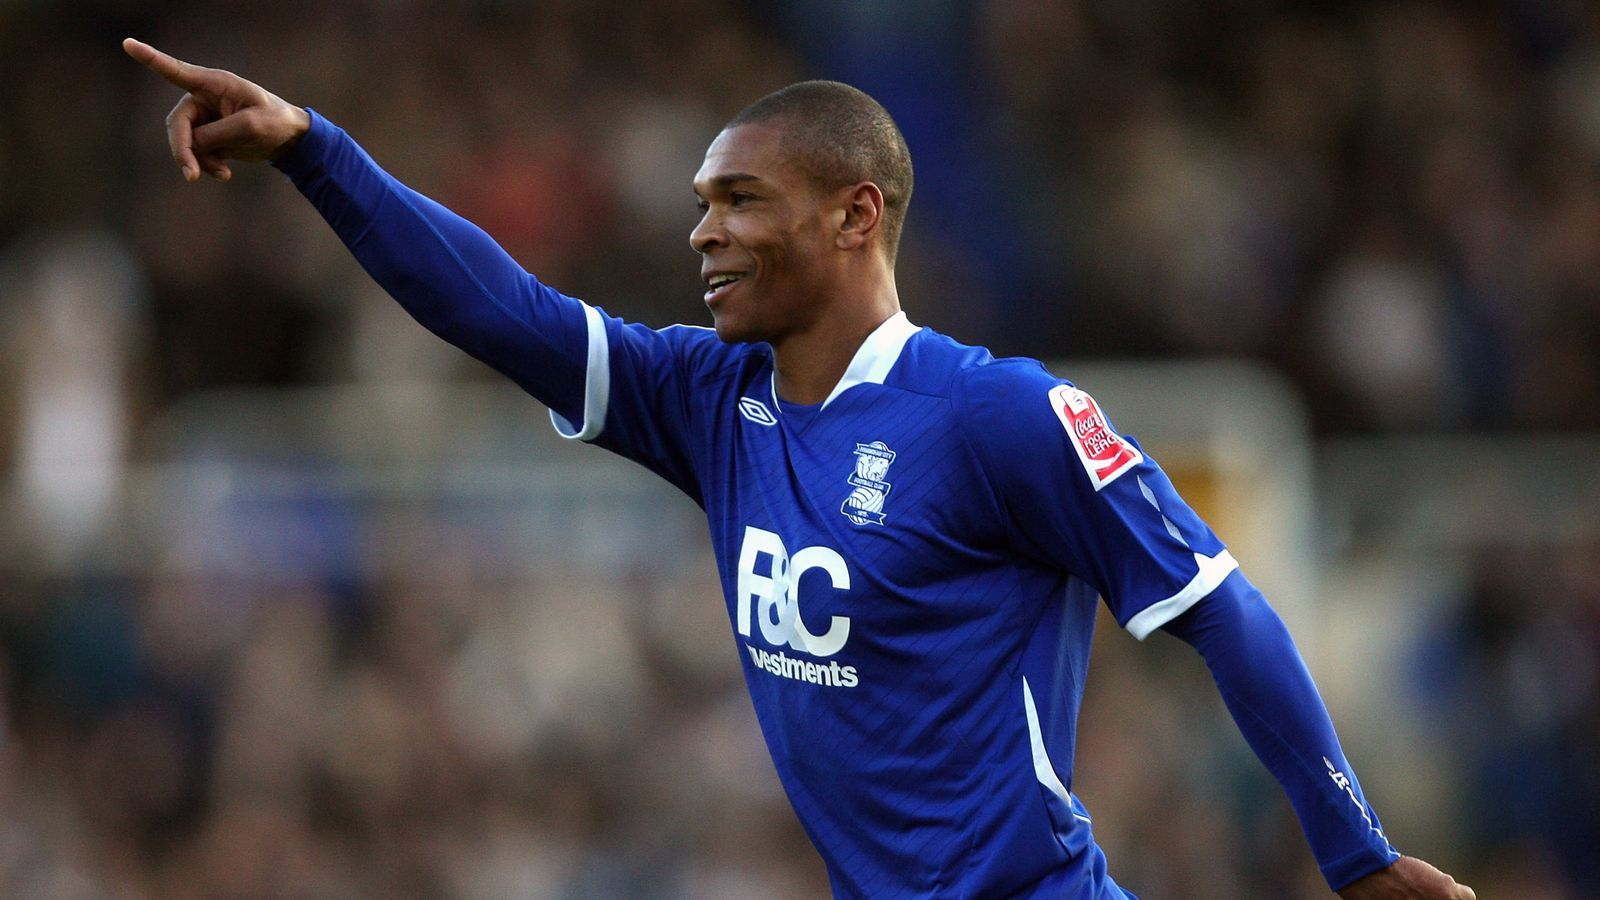 Marcus Bent handed 12-month suspended prison sentence